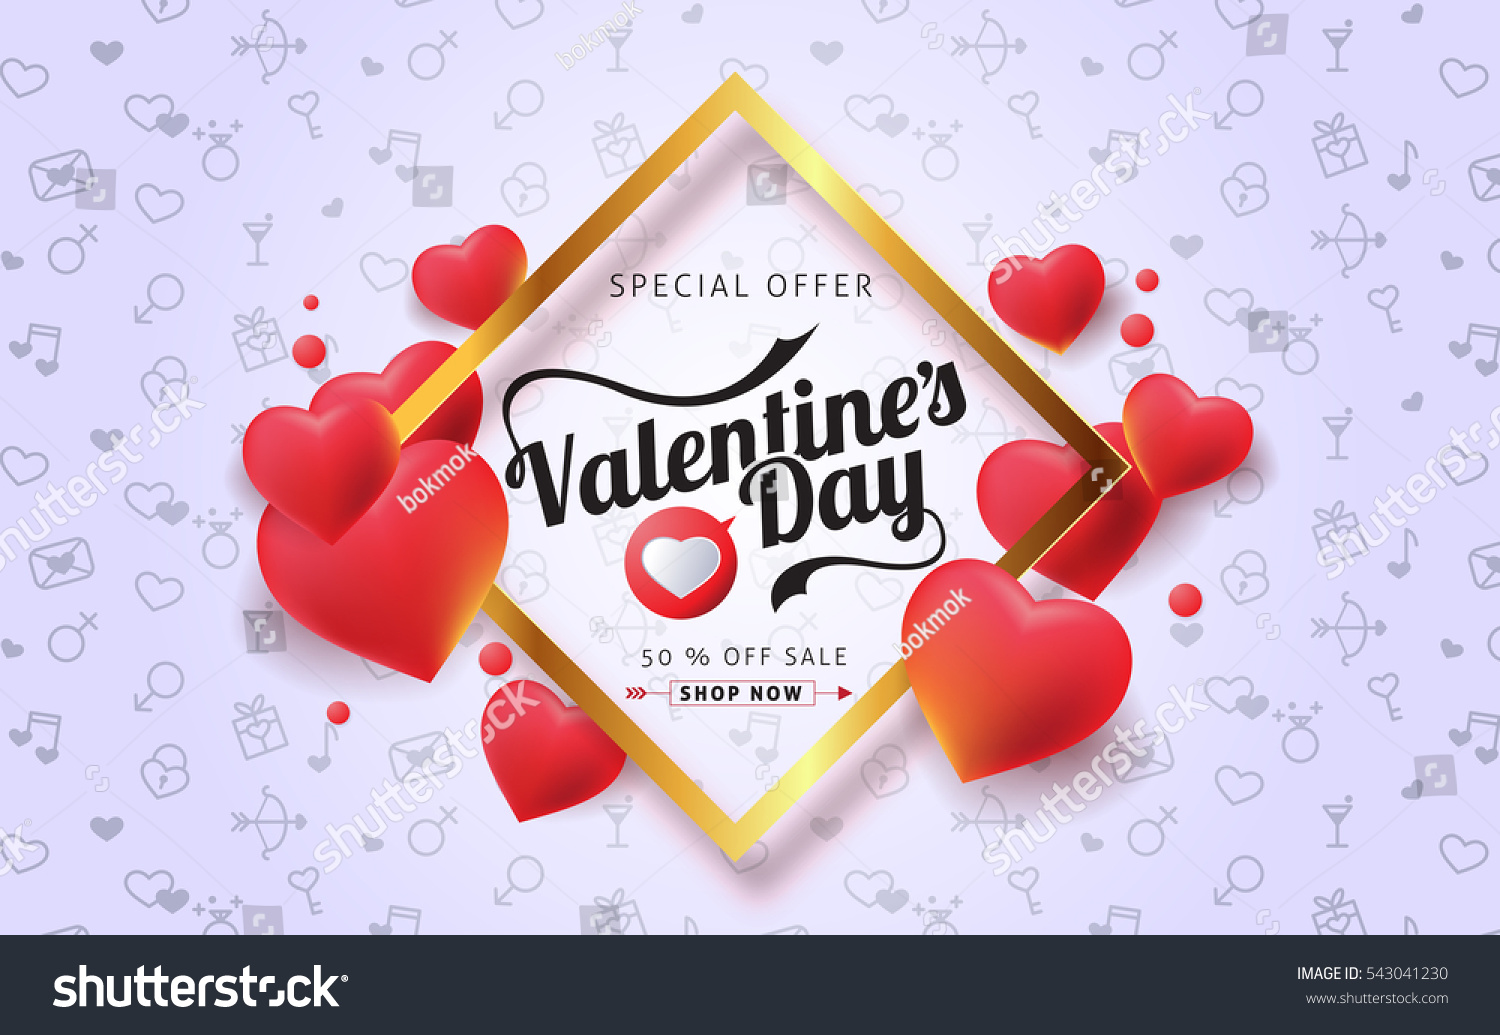 valentines day sale background balloons heart stock vector royalty